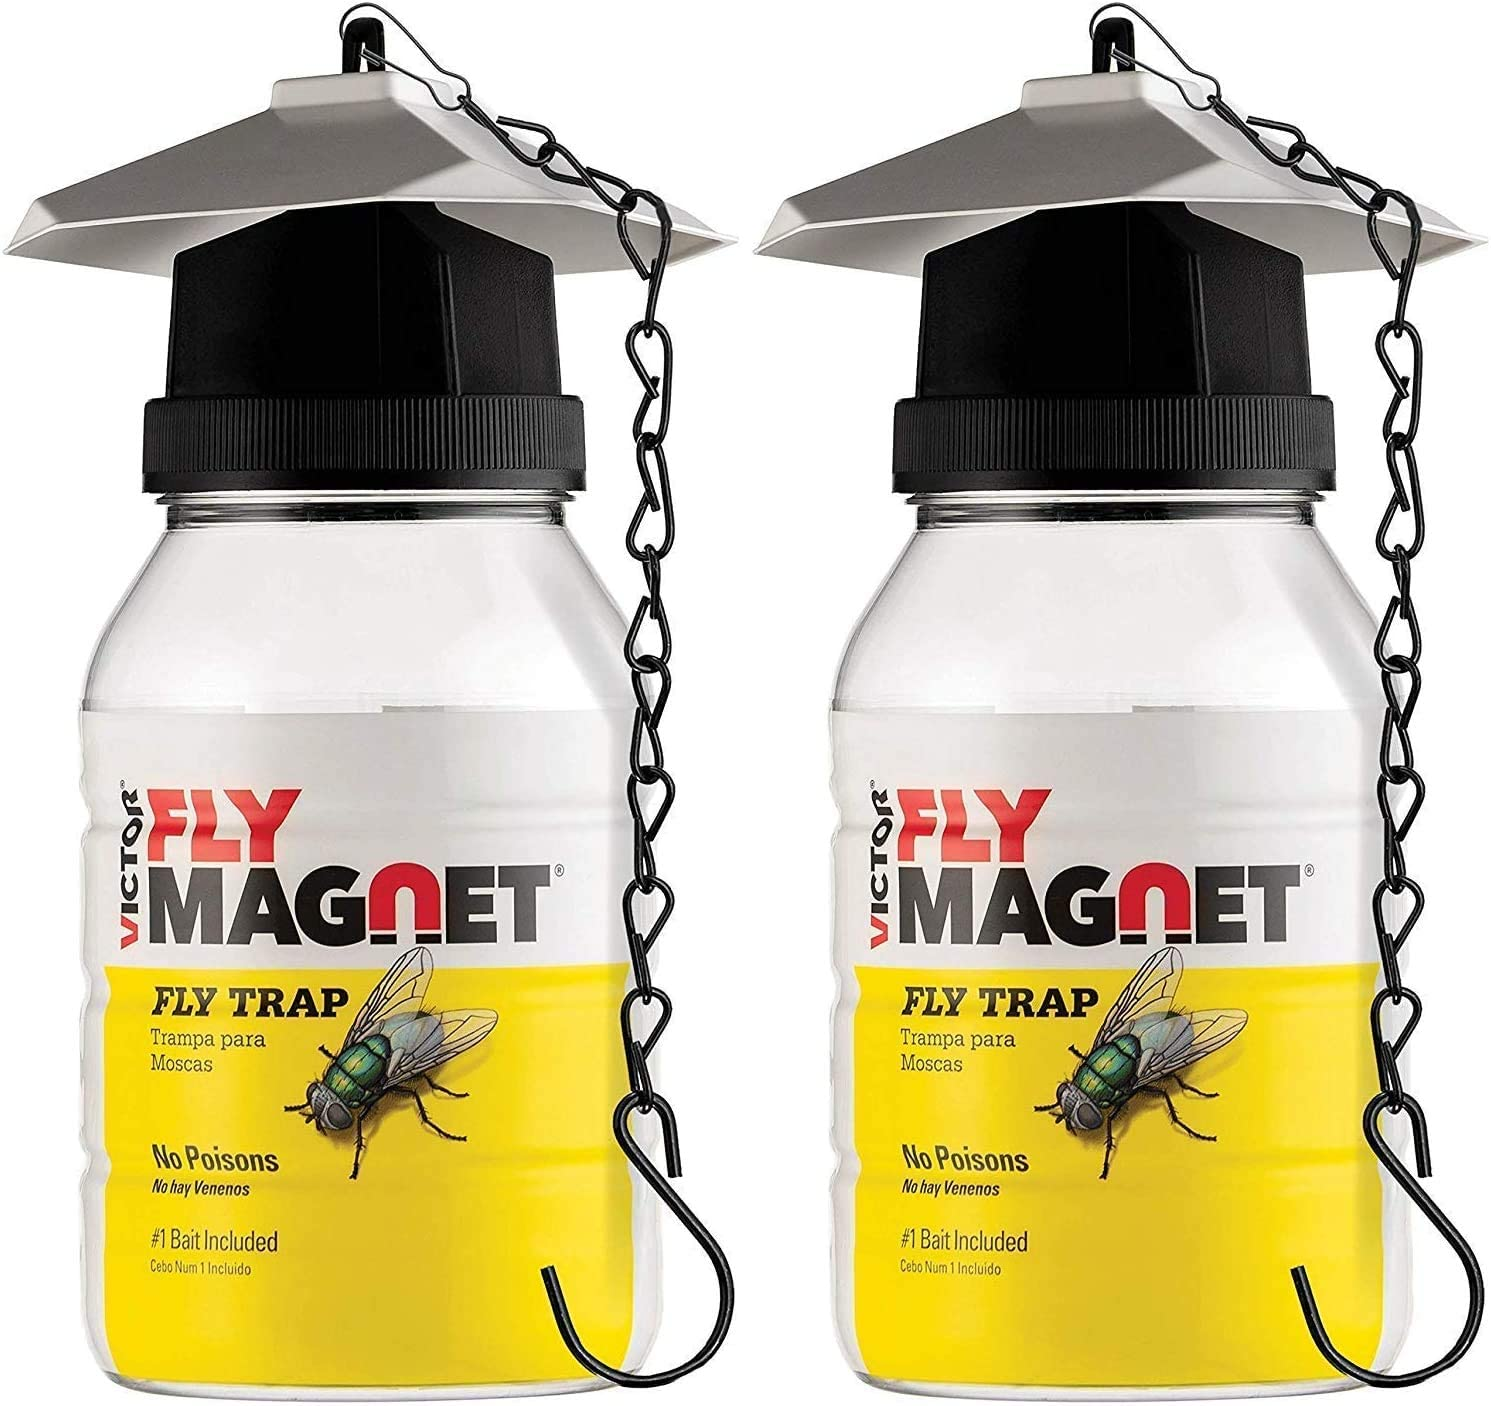 SEWANTA Victor M380 [Set of 2] Reusable Outdoor Fly Traps 32 oz - Fly Magnet Bait Trap - Made in USA - Bundled with 2 Bait Refills and 2 Hanging Chains